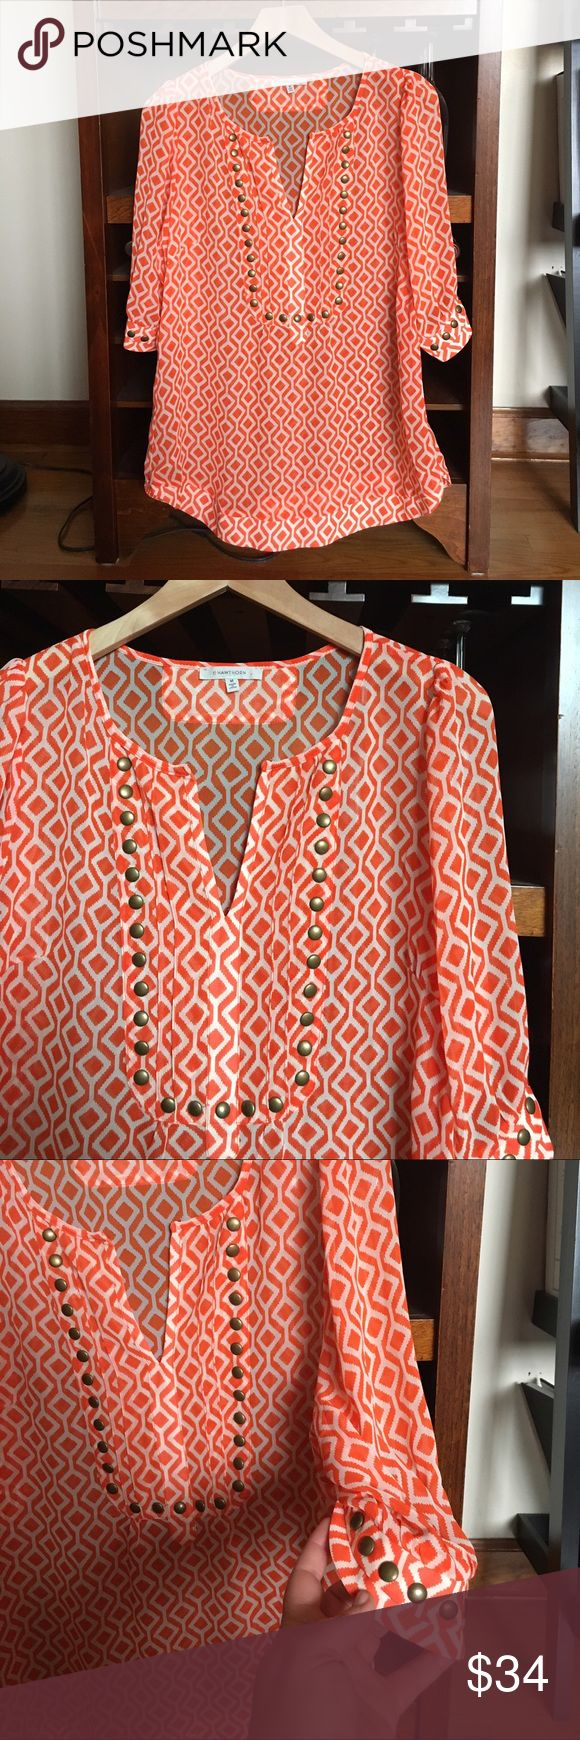 41 Hawthorn top from Stitch Fix 41 Hawthorn top from Stitch Fix. Size medium. No trades. 41 Hawthorn Tops Tunics